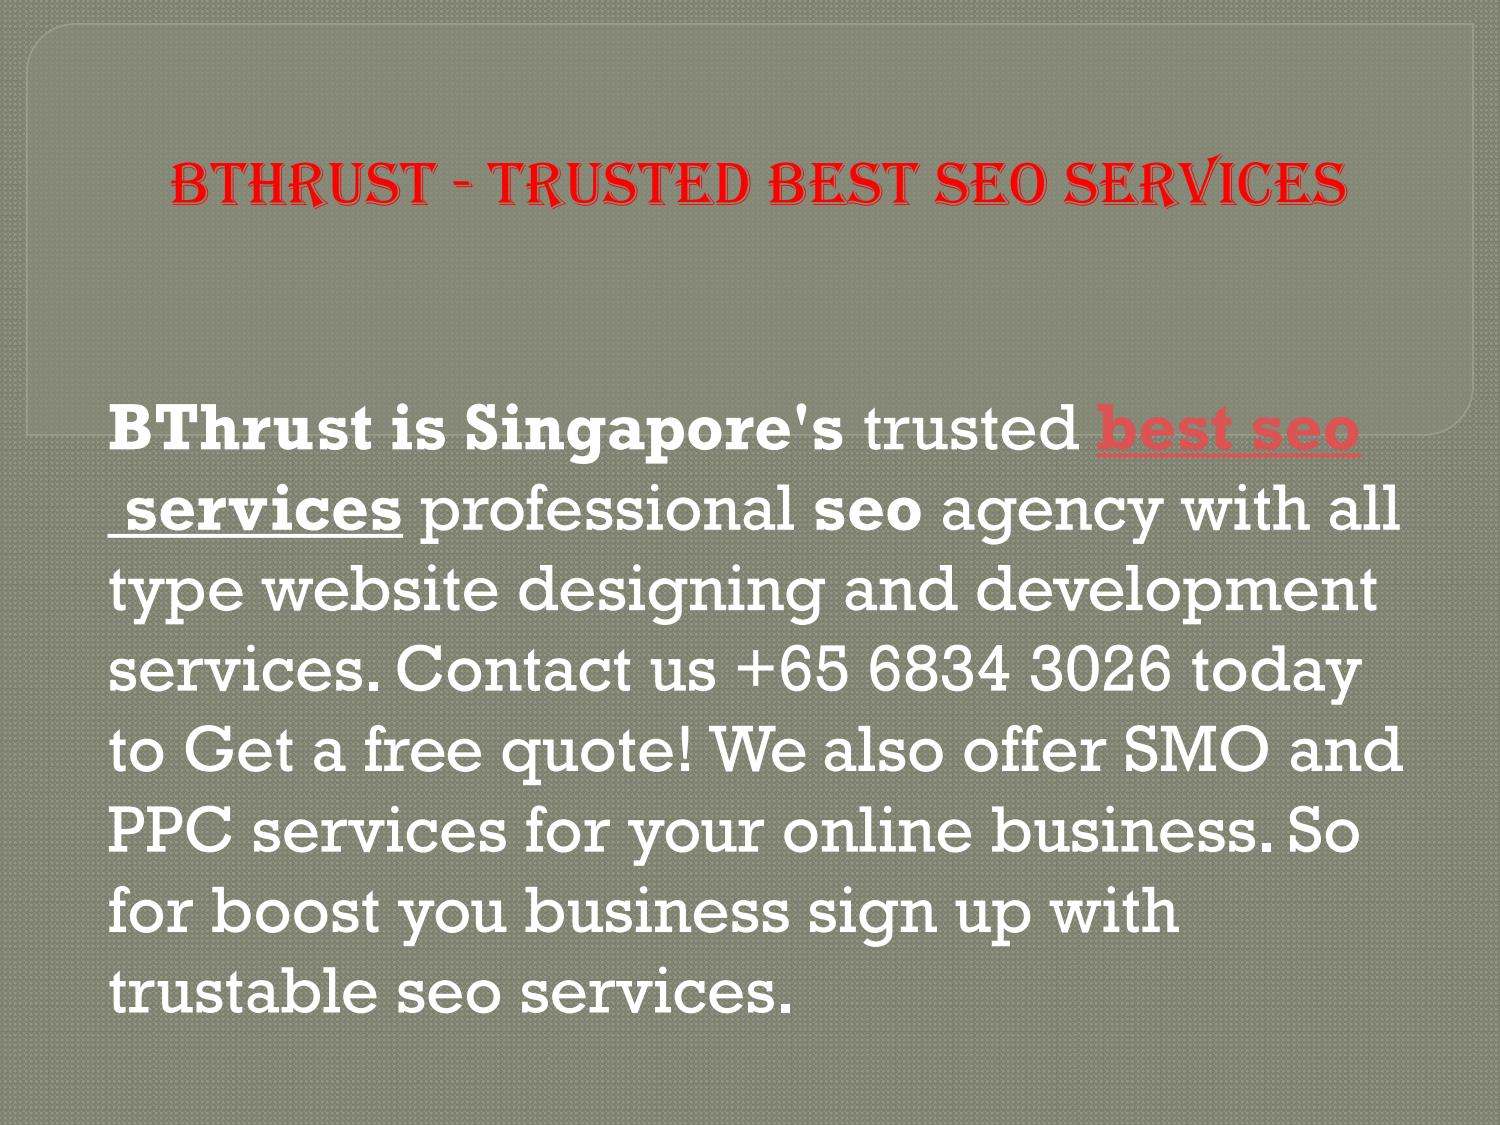 Bthrust trusted best seo services